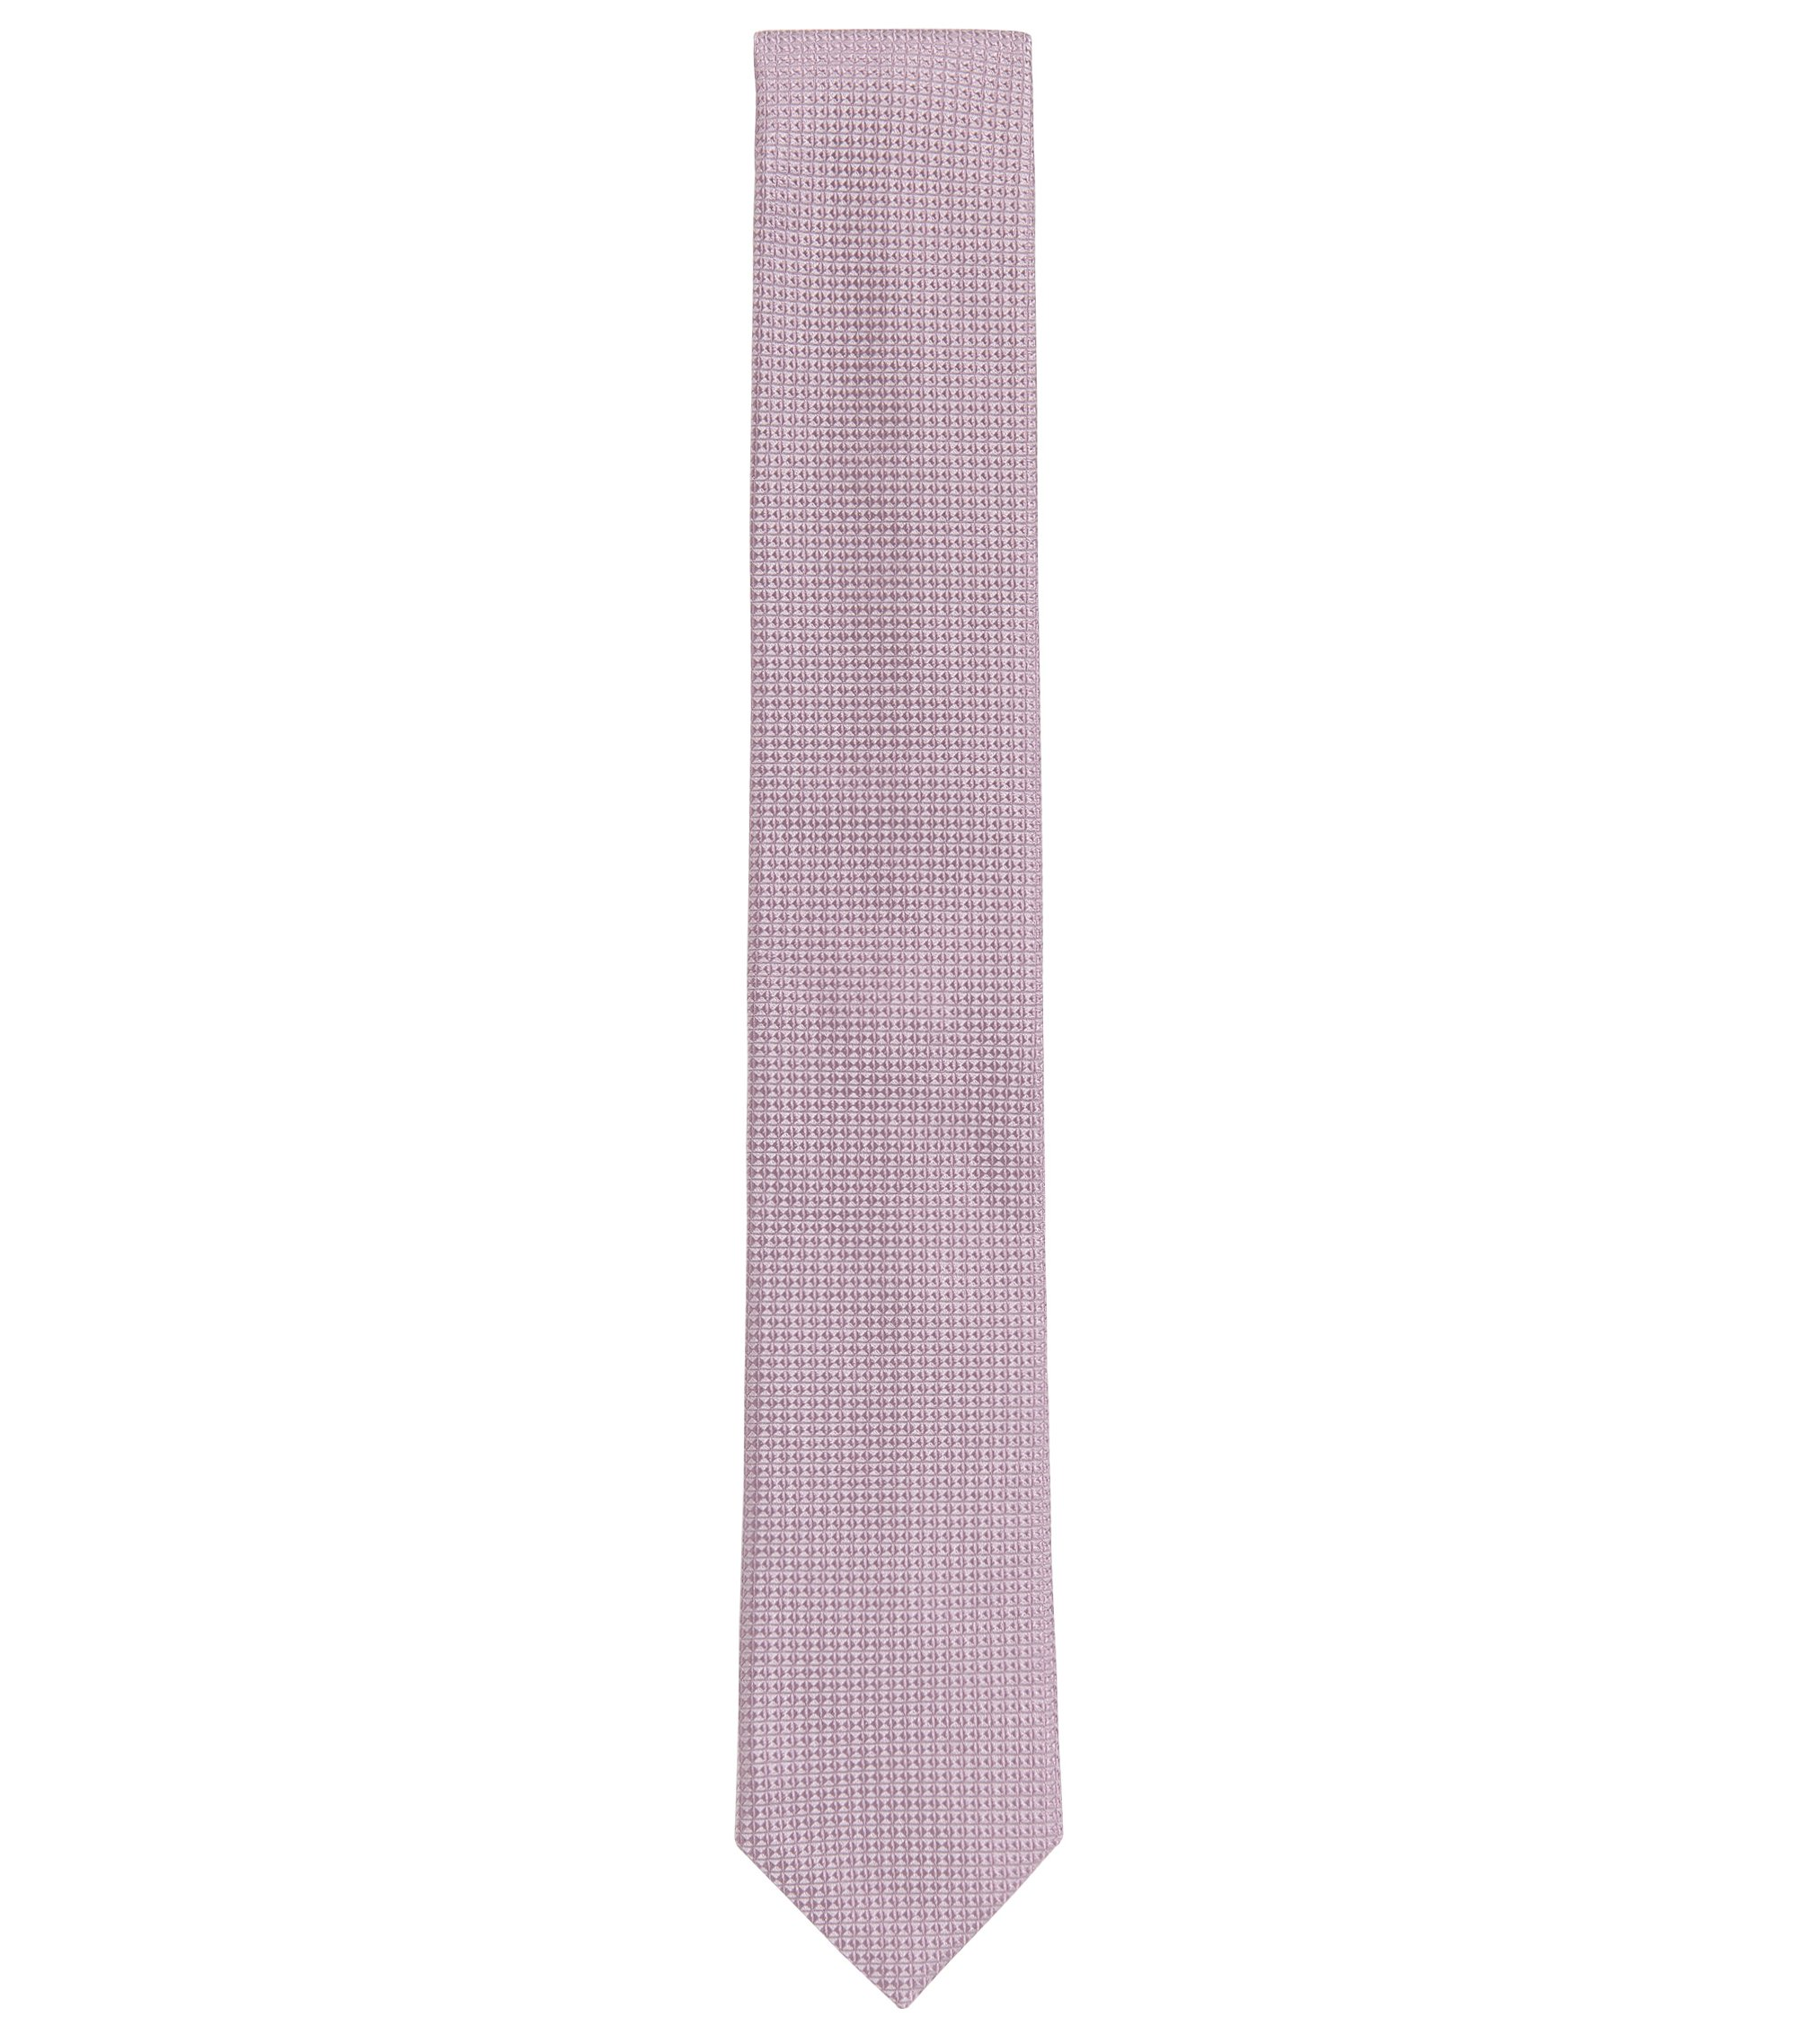 Italian-made tie in patterned silk jacquard, light pink